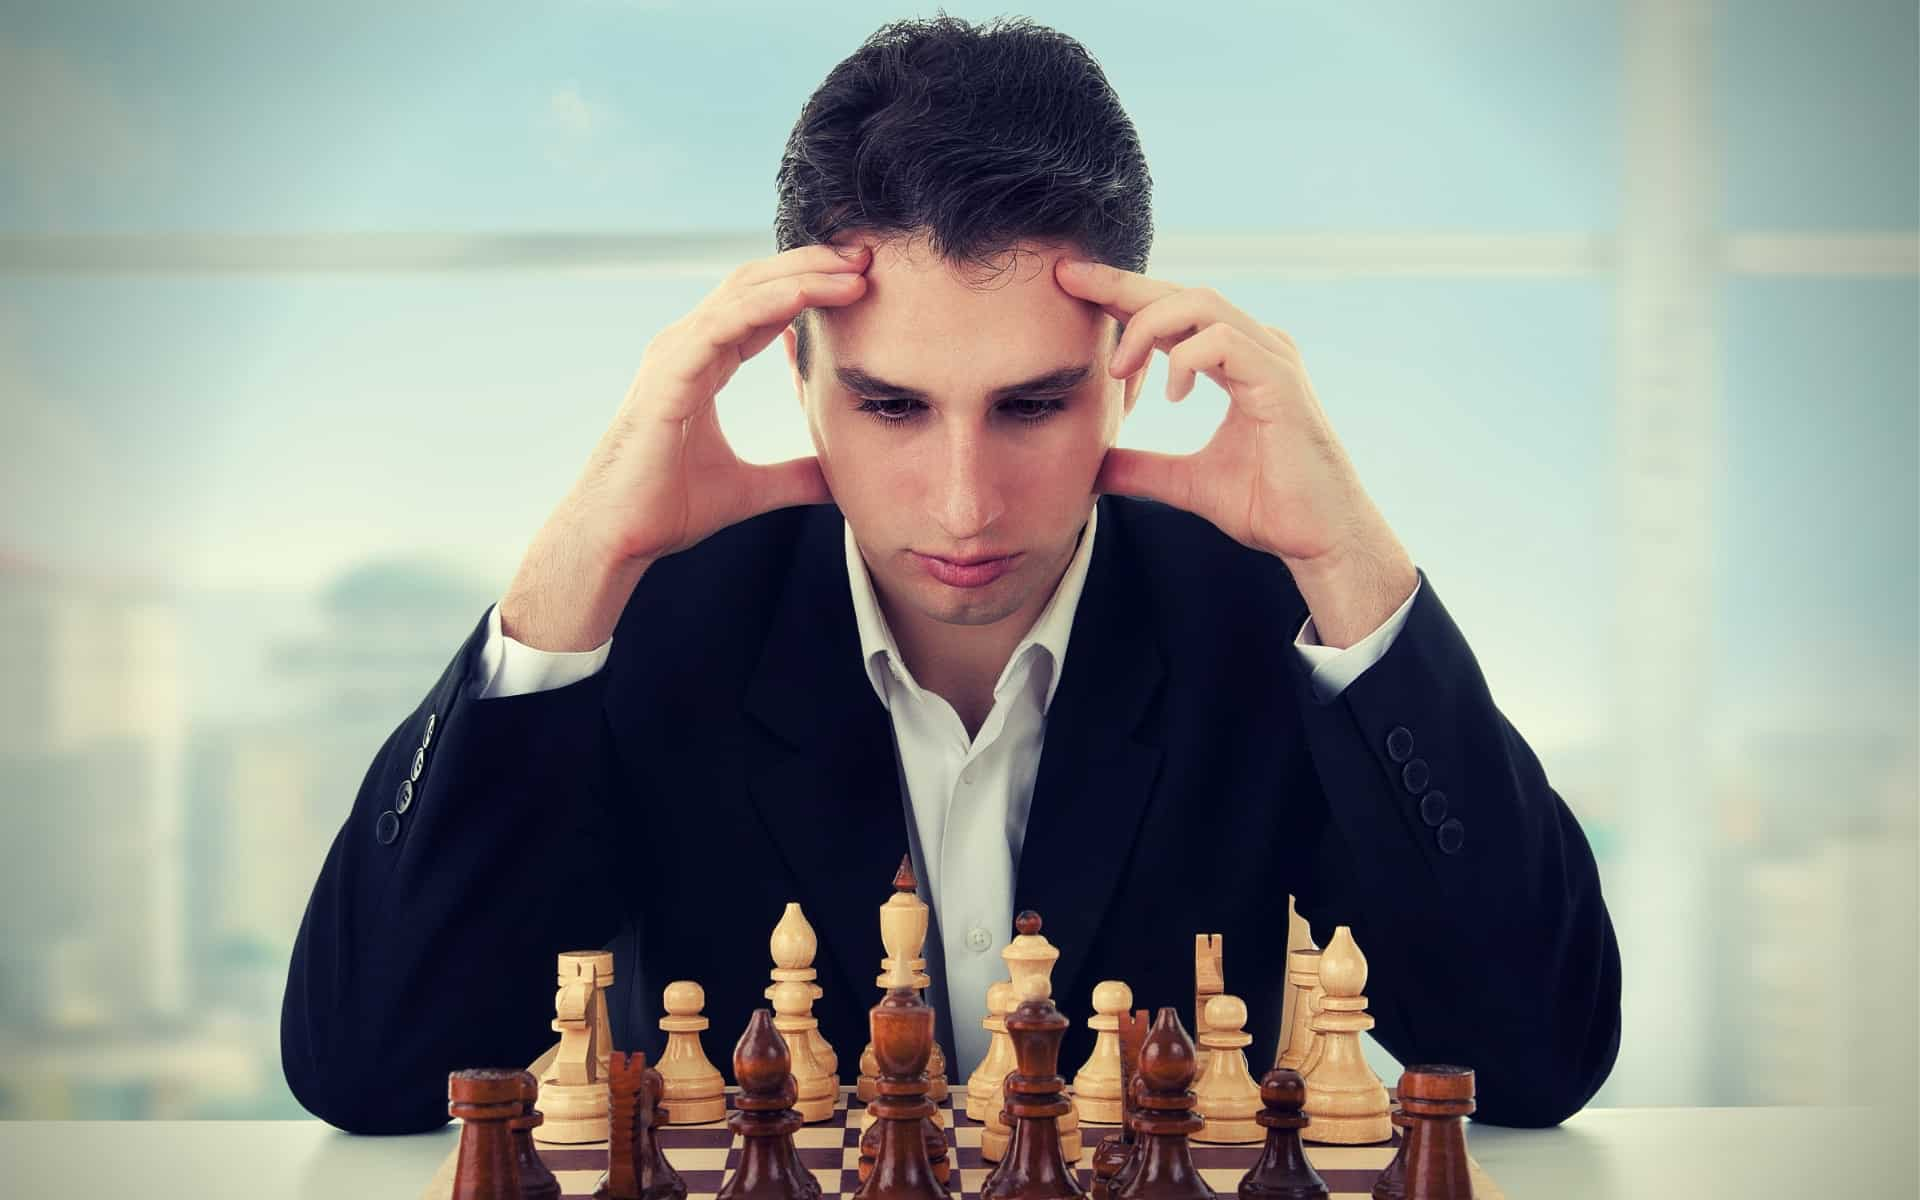 Estrogen Dominance Serious man thinks on game of chess